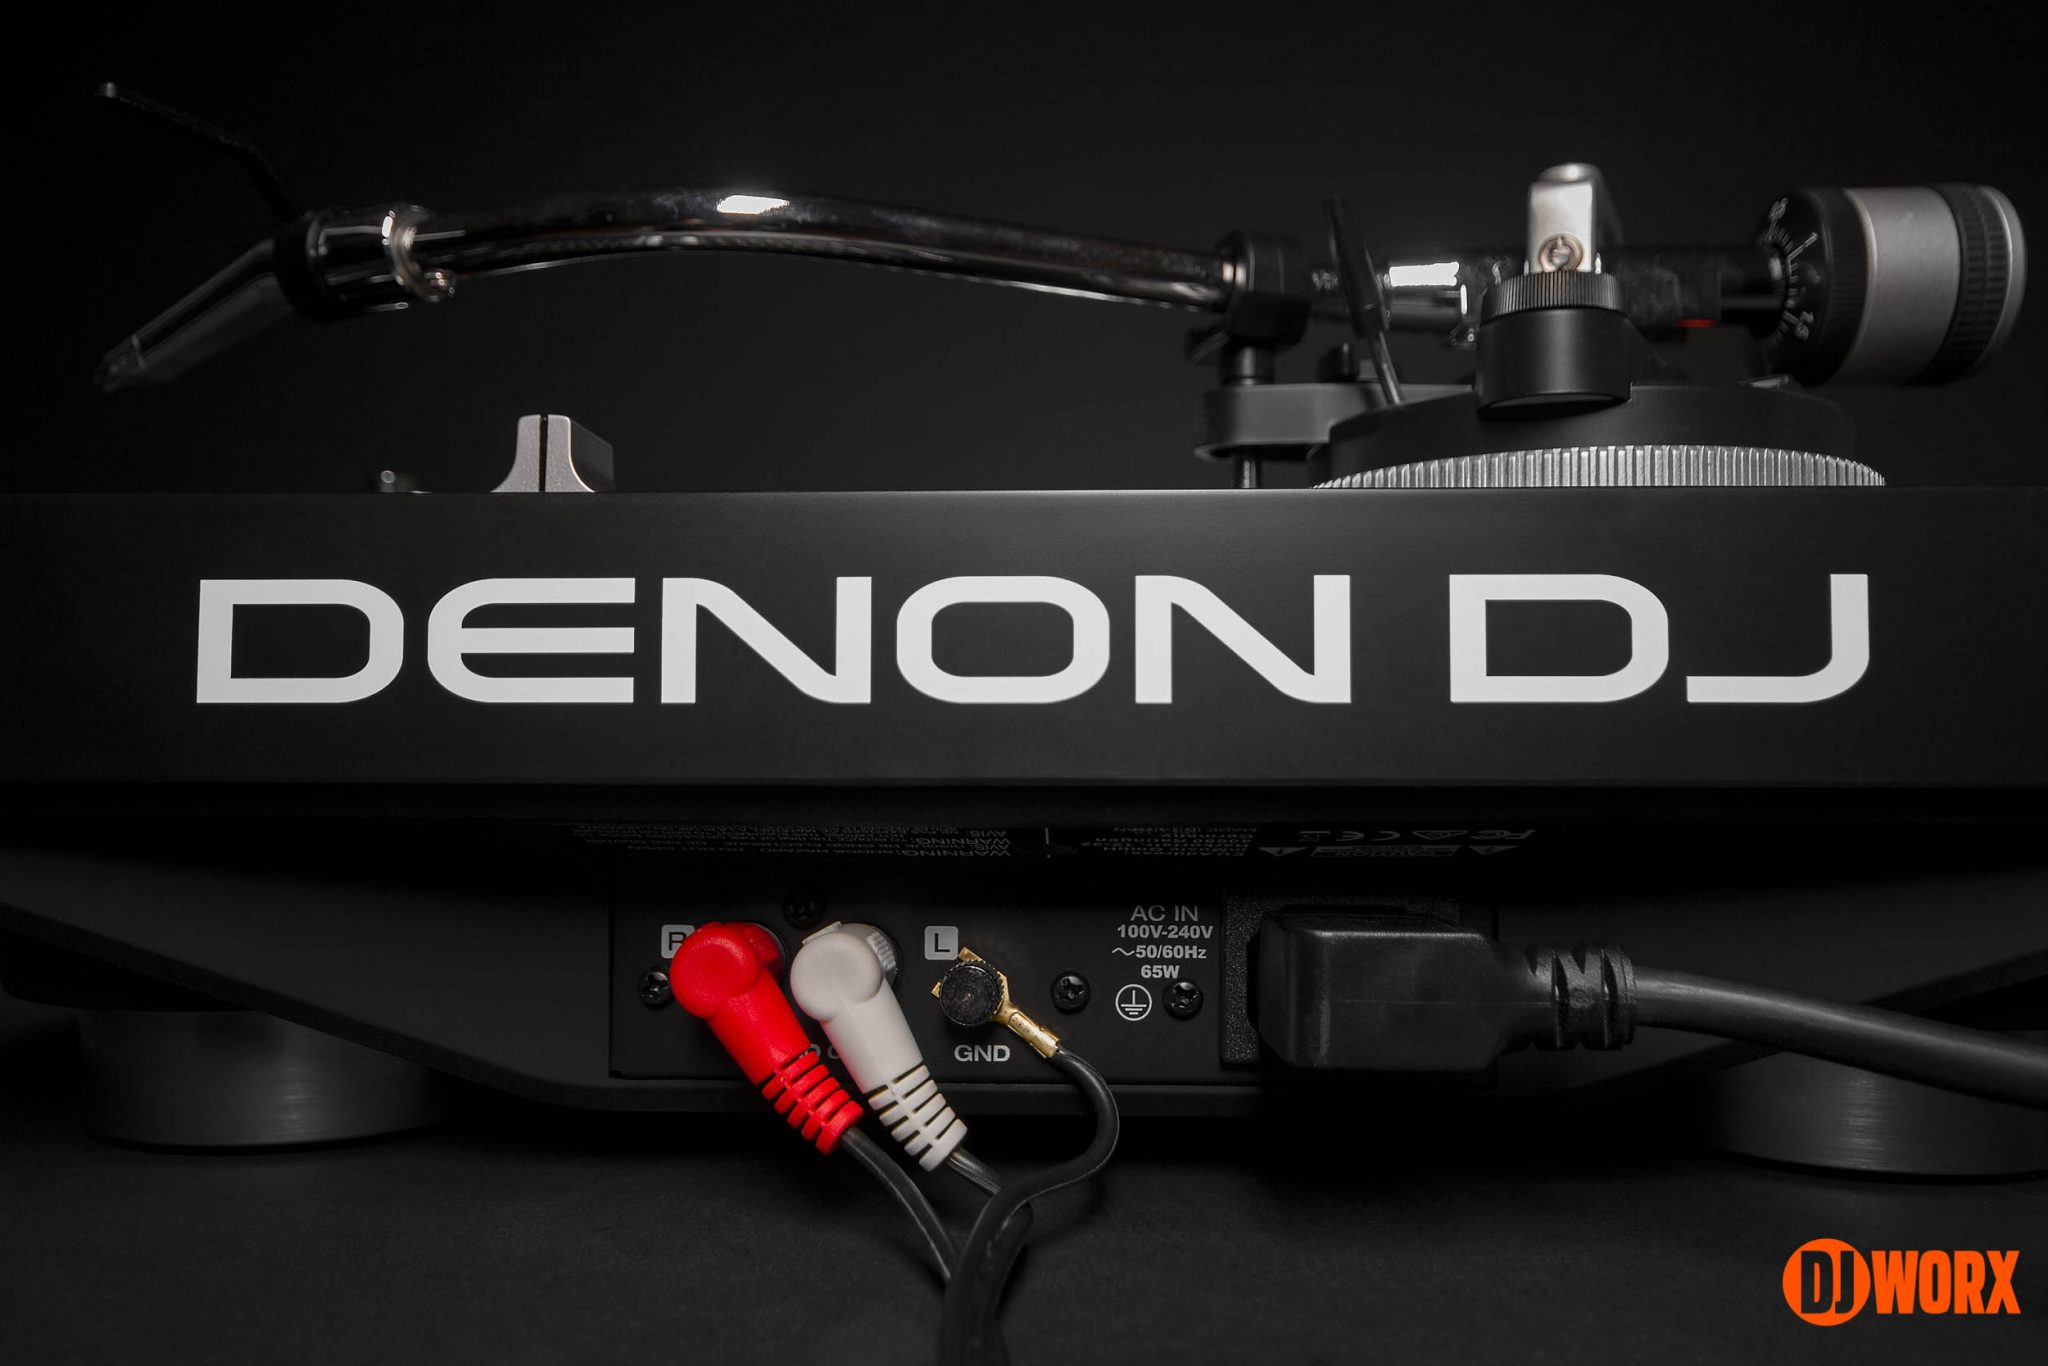 Denon DJ L12 Prime turntable review DJWORX (4)